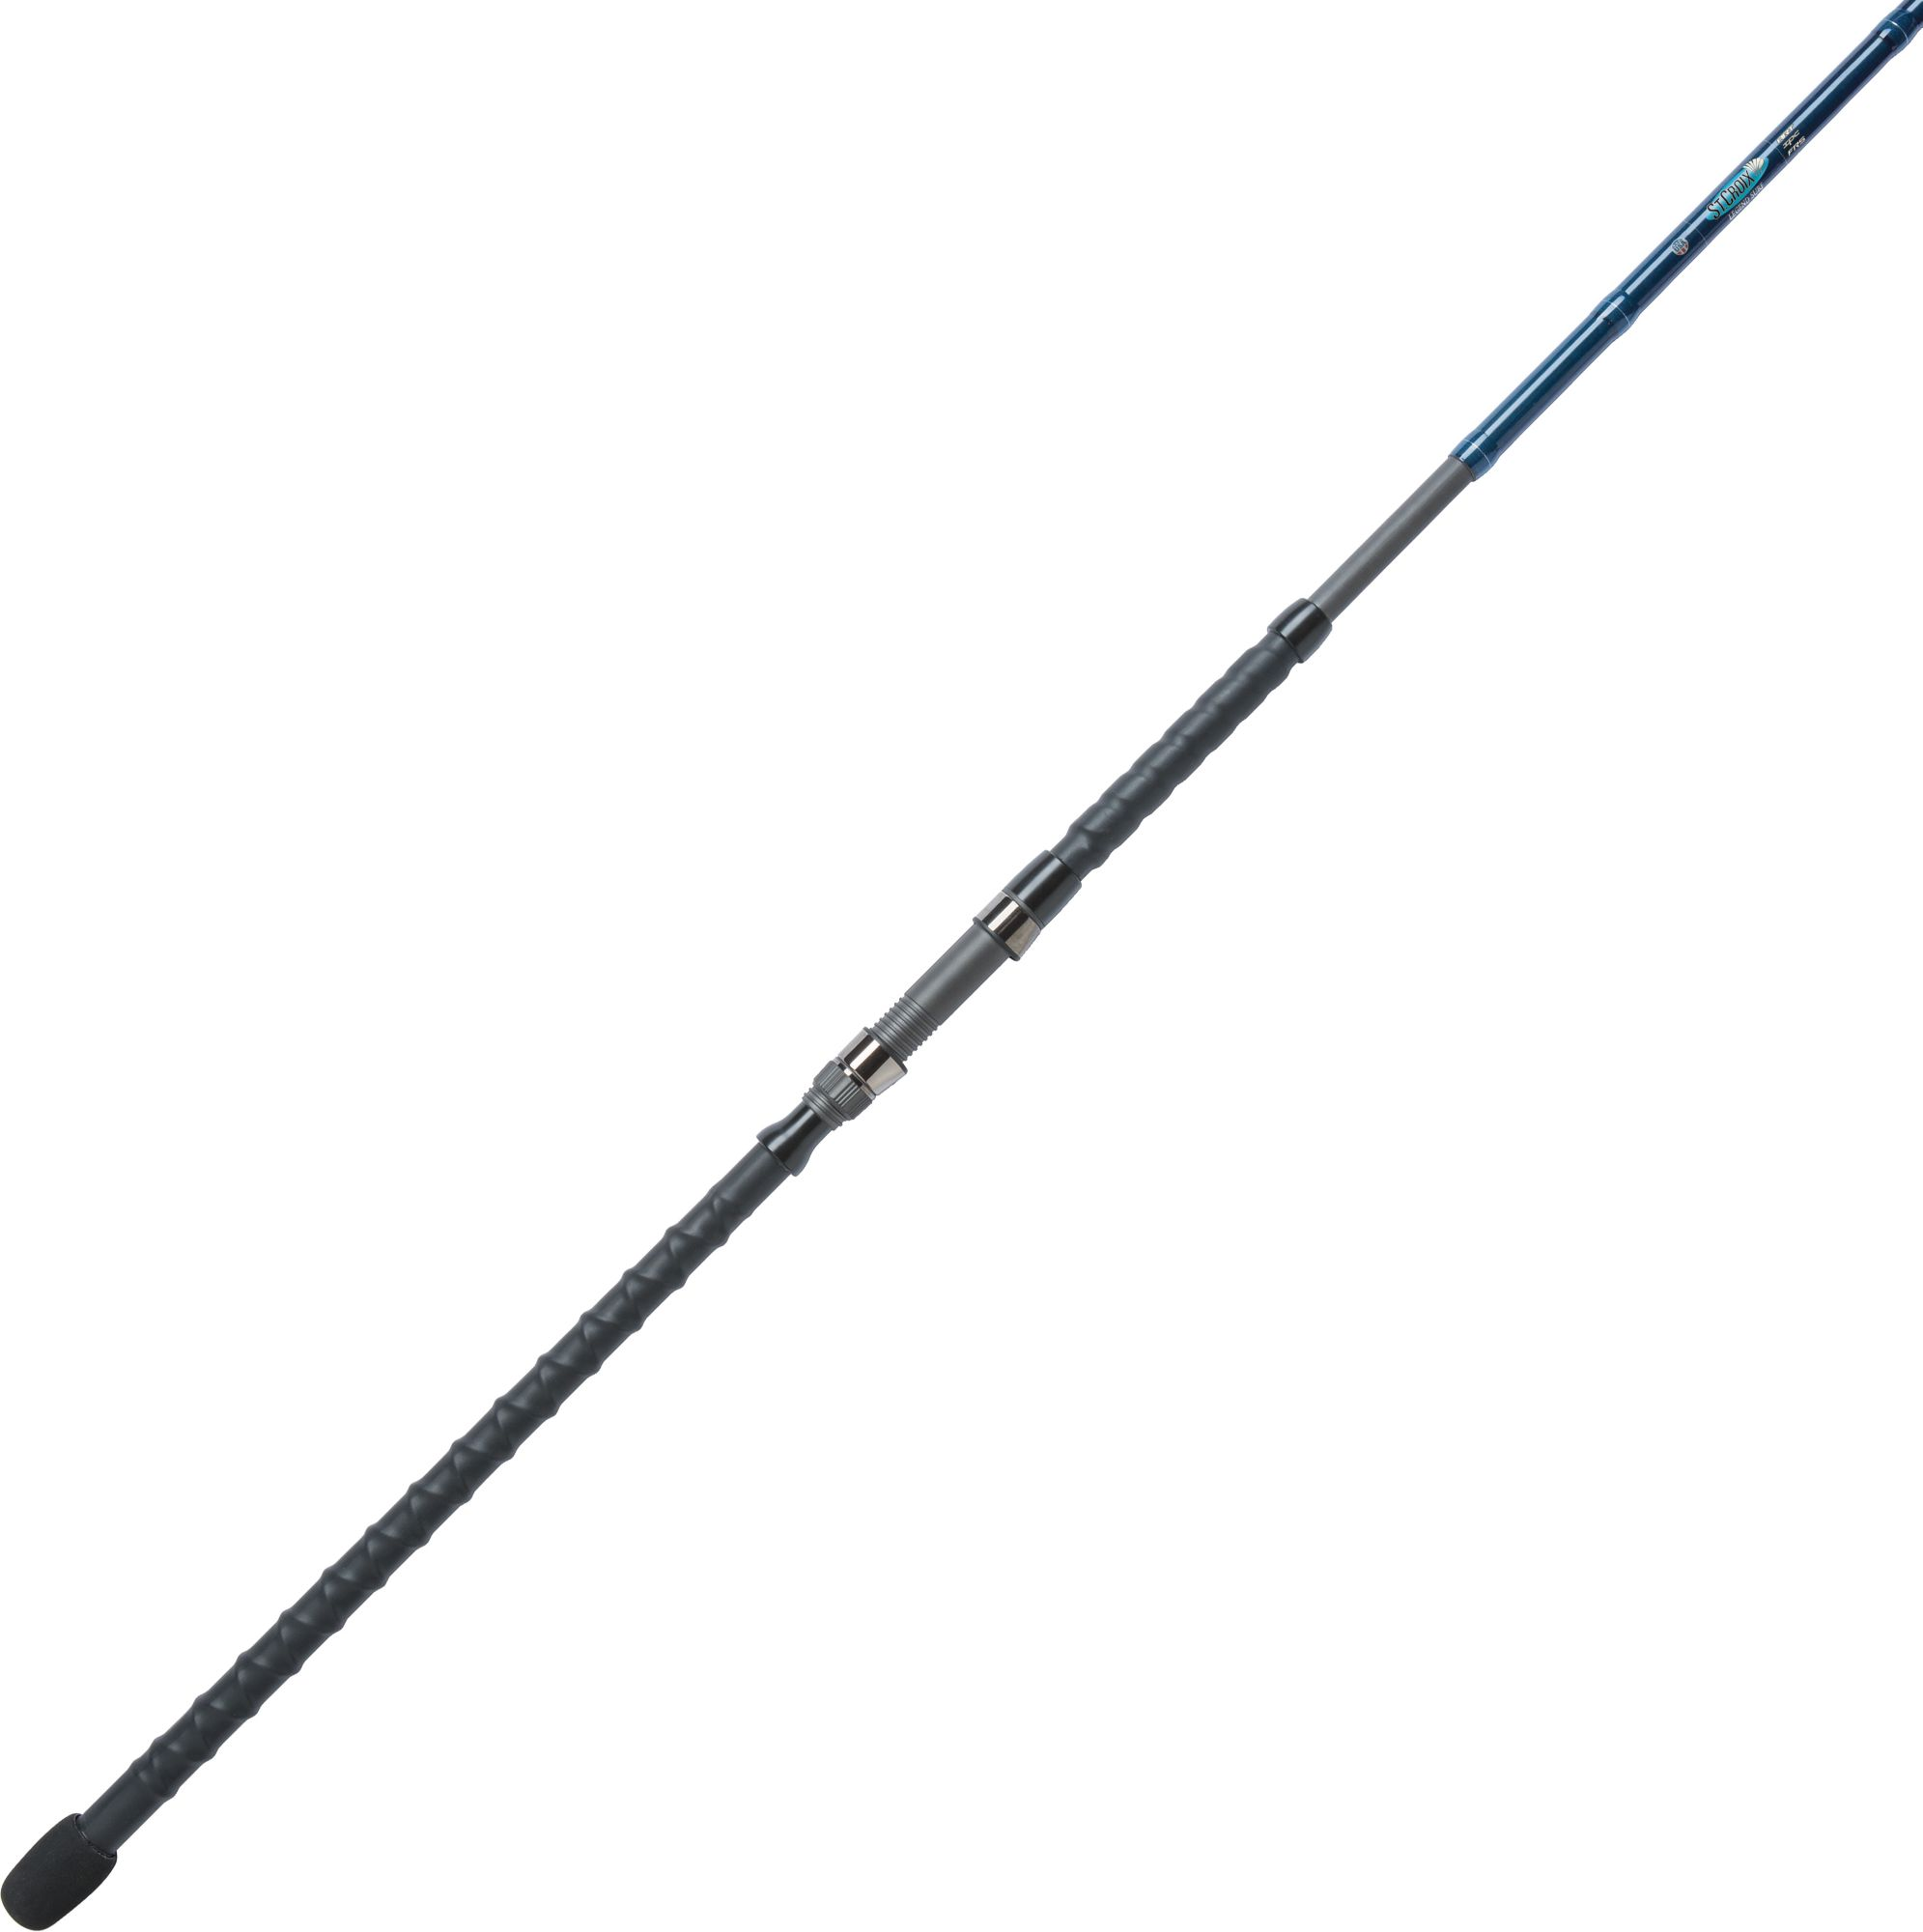 St. Croix Legend Surf Spinning Fishing Rods, Size: 9'0 thumbnail